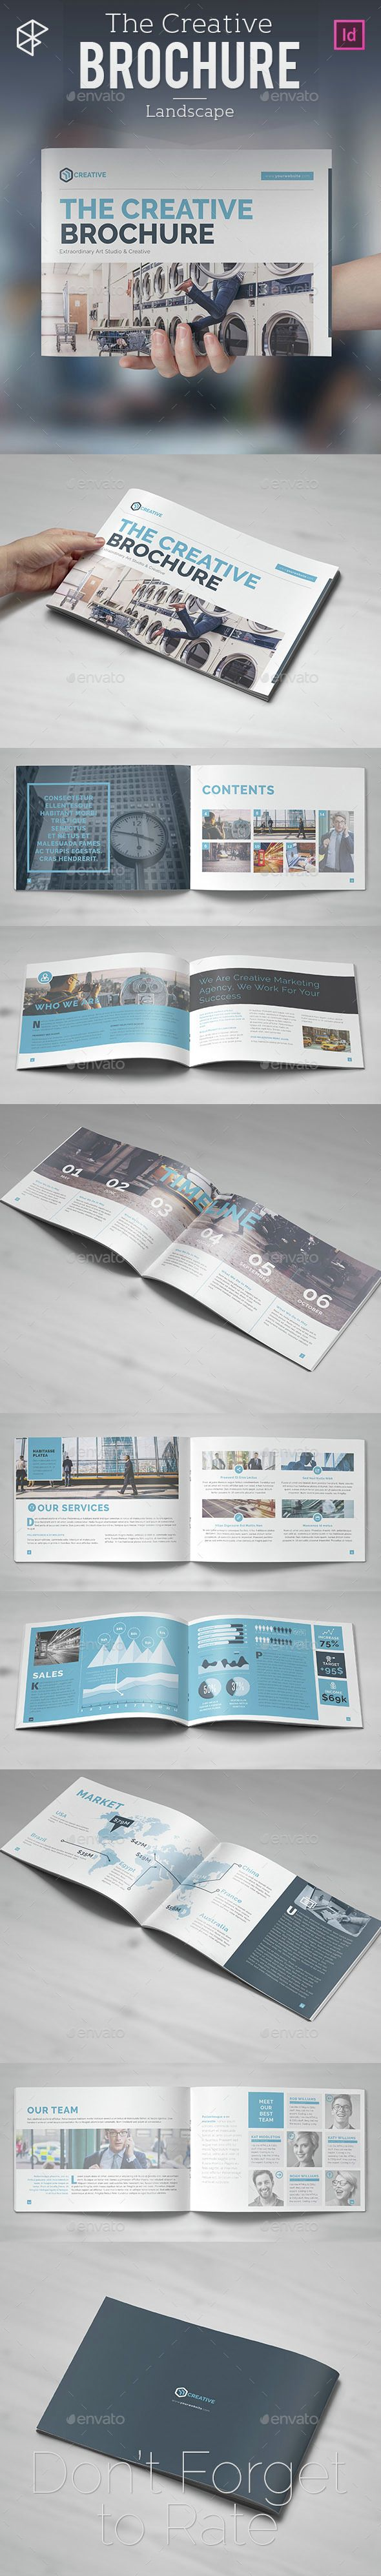 The Creative Brochure - Landscape | Brochures, Landscaping and ...